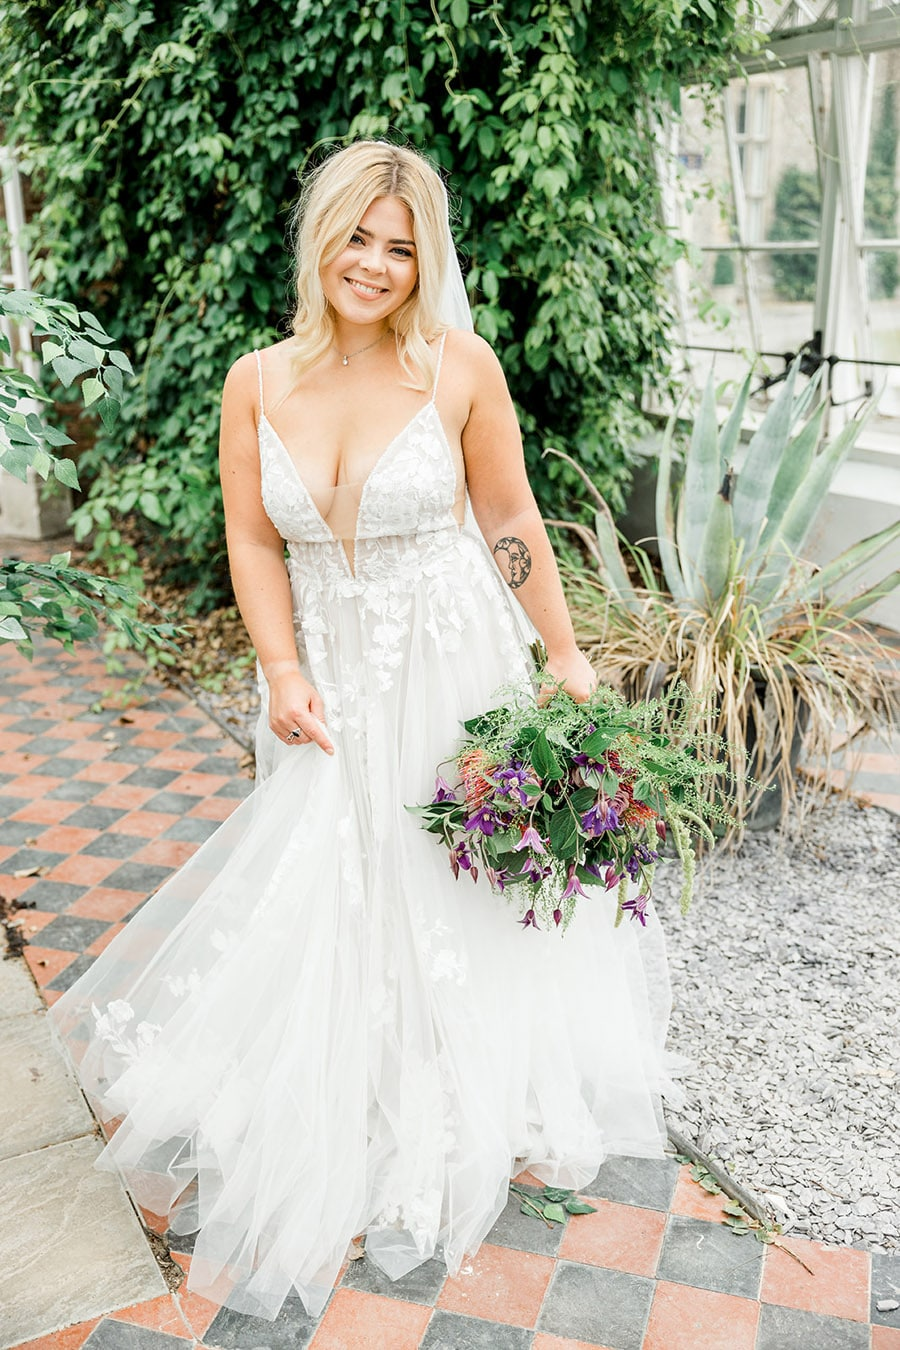 Conservatory bridal portraits at Slindon College wedding